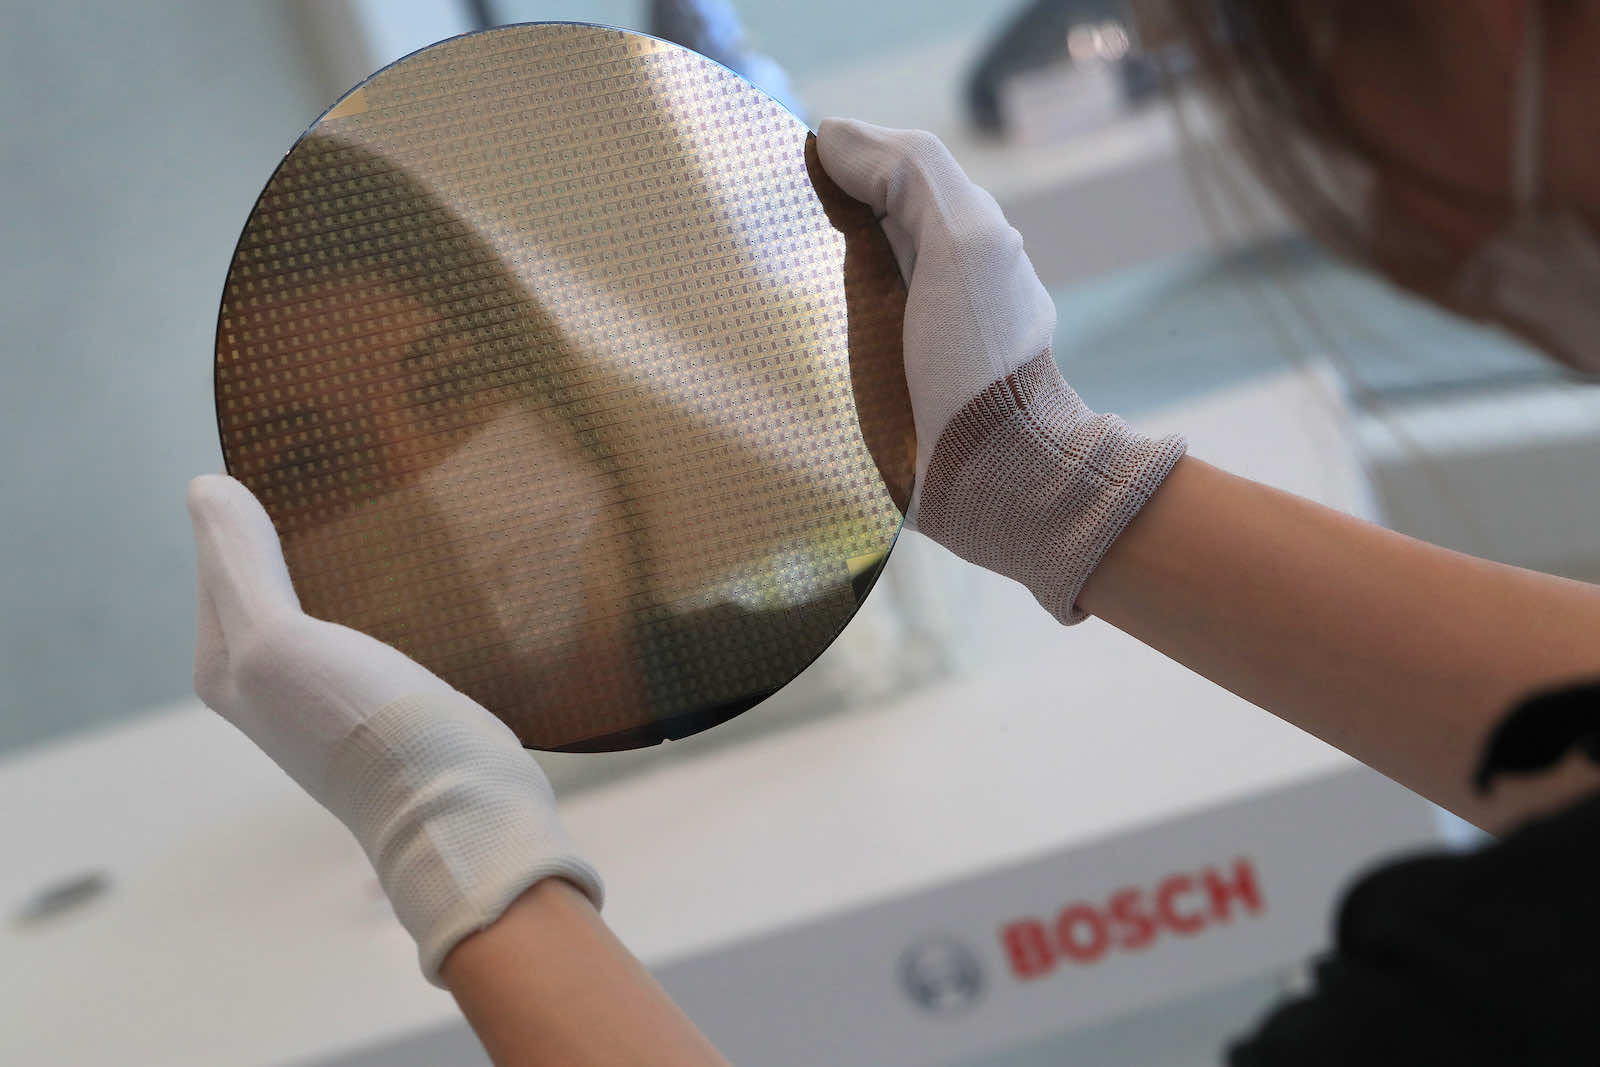 A silicon wafer at the semiconductor fabrication plant operated by Robert Bosch GmbH in Dresden, Germany (Krisztian Bocsi/Bloomberg via Getty Images)